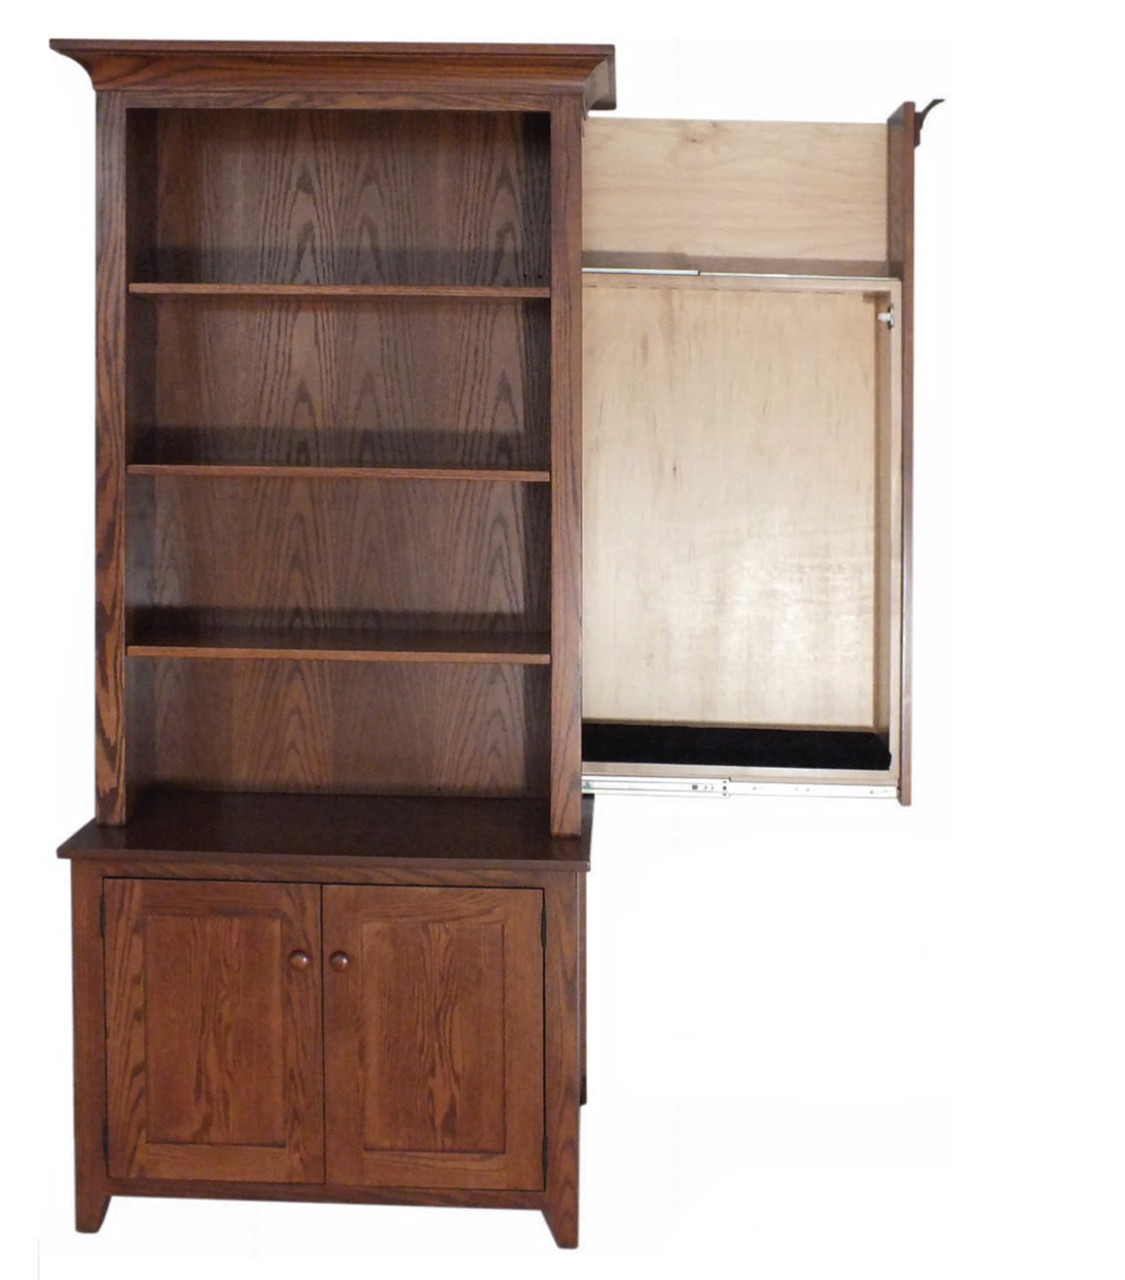 Bookcase w/ Hidden Gun Cabinet II - Cherry Valley Furniture